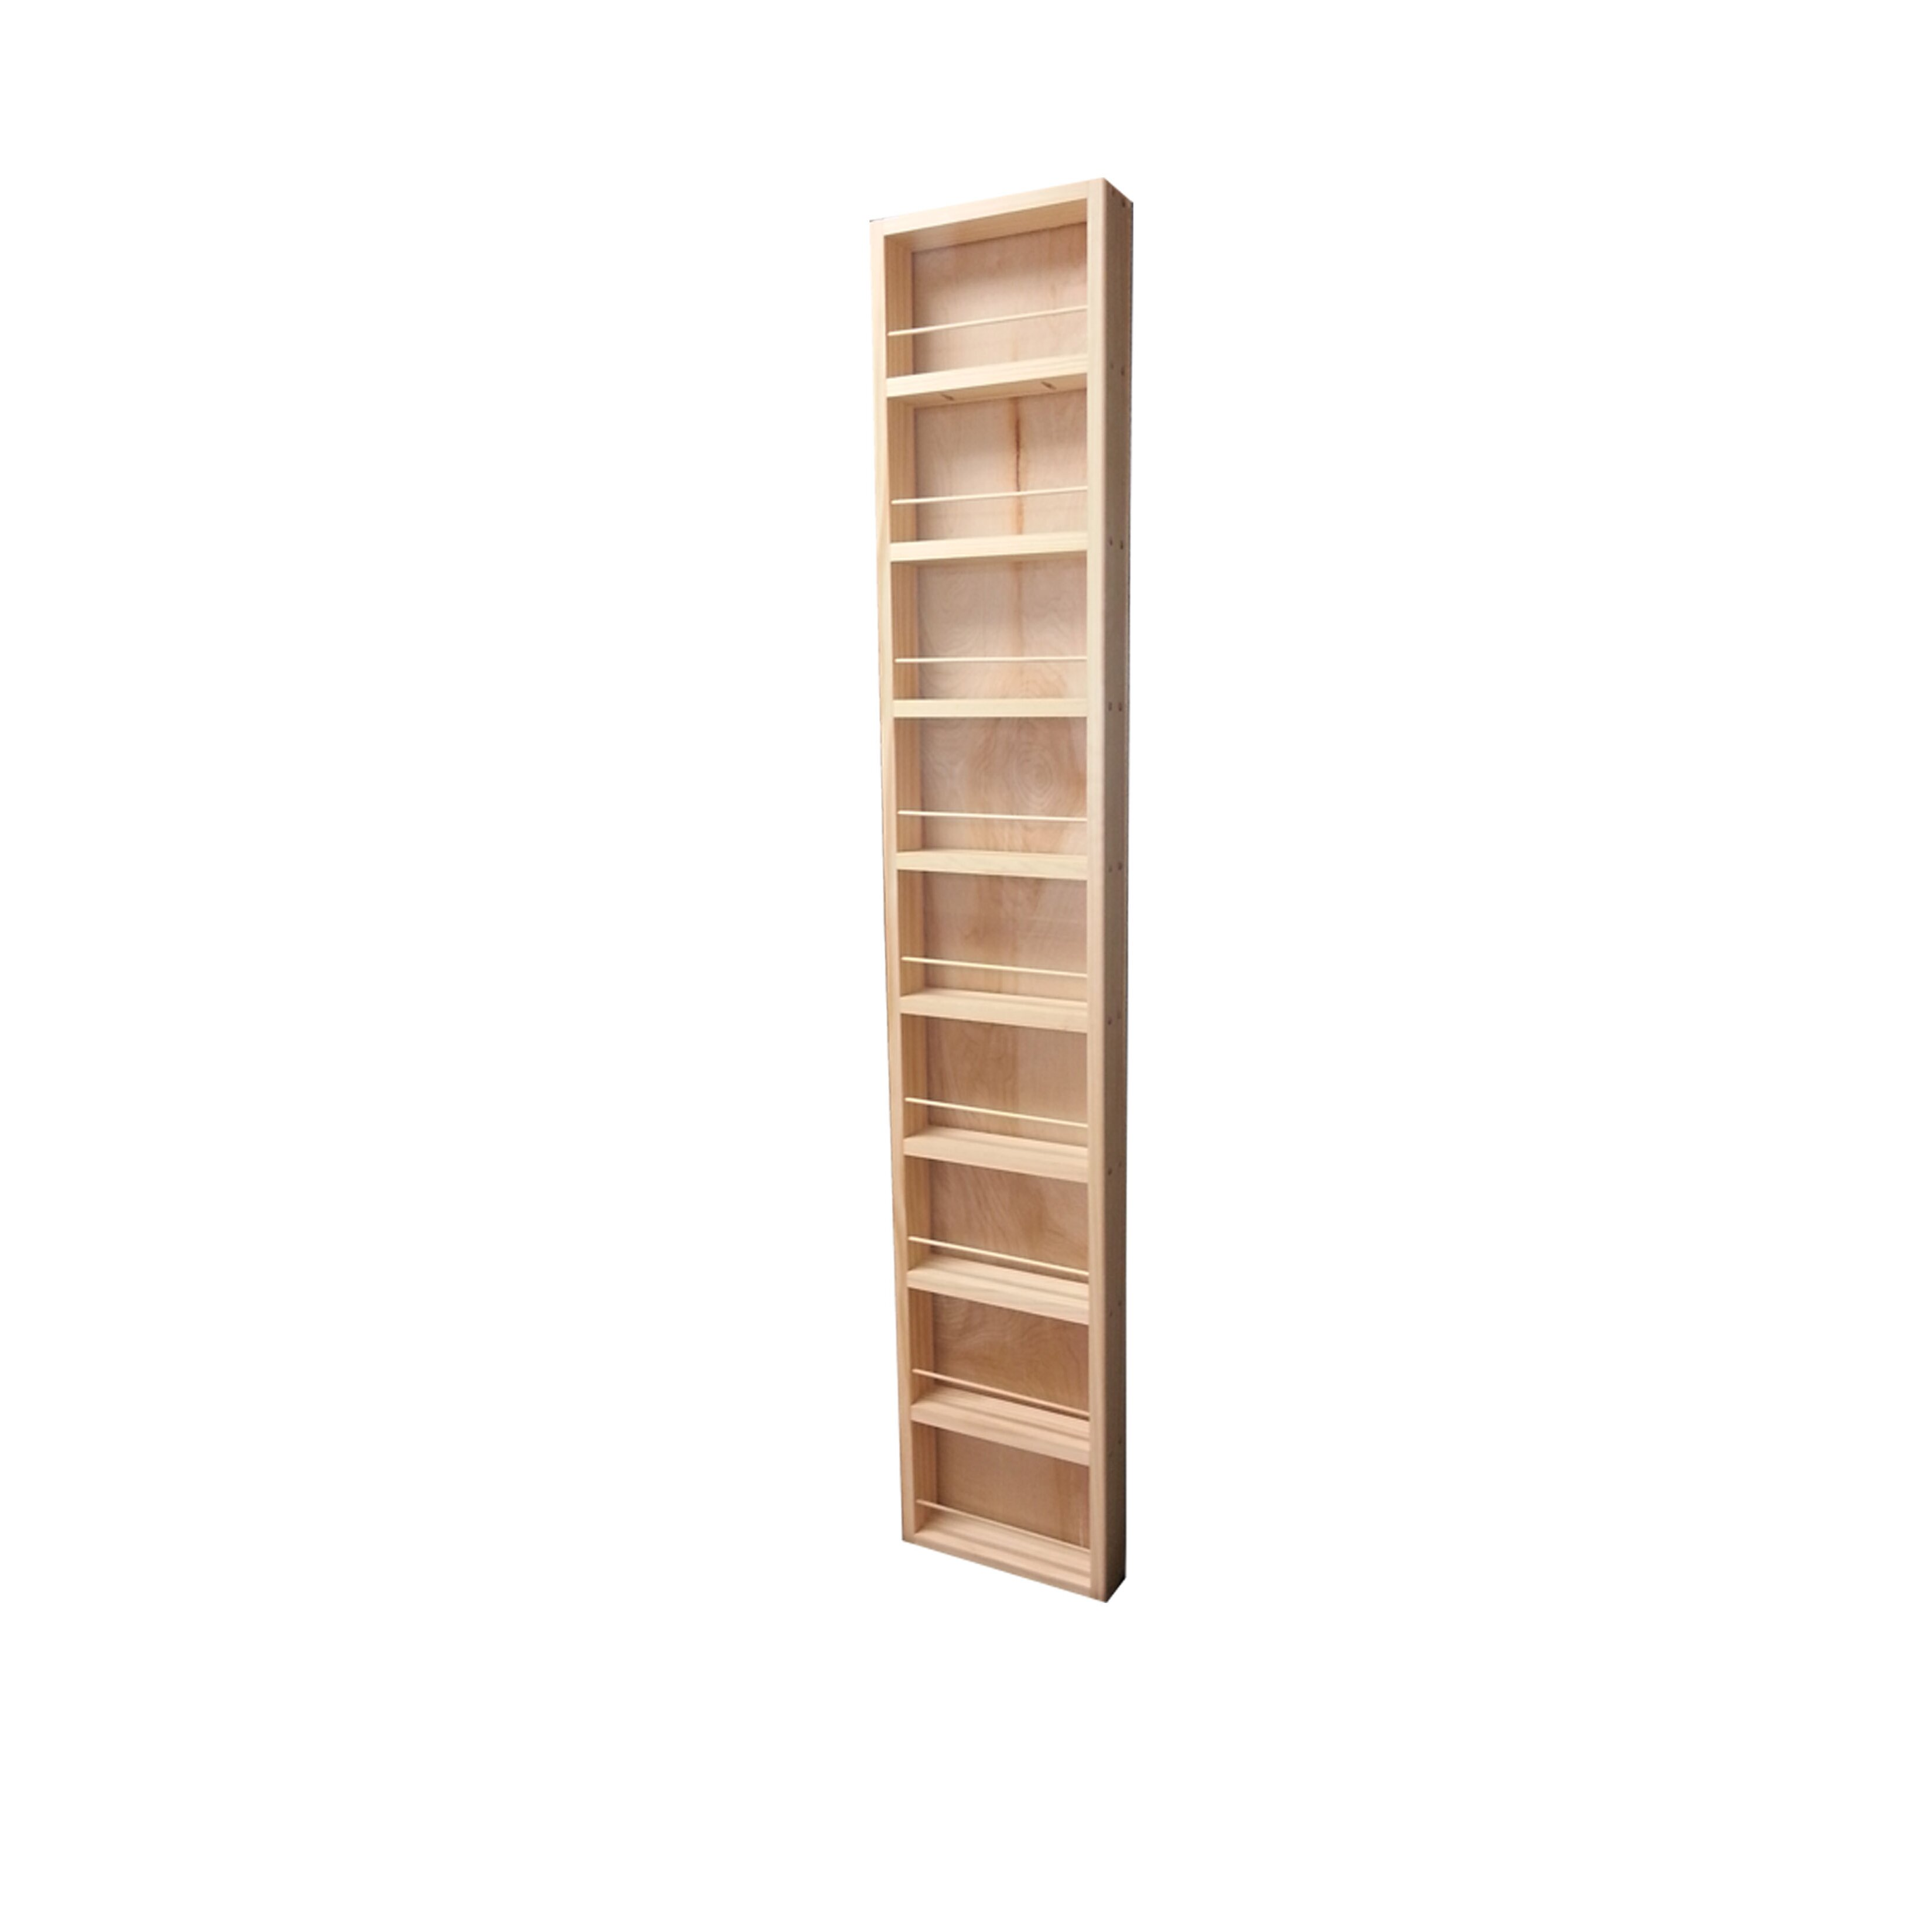 Wg Wood Products Midland Premium Wall Mounted Spice Rack